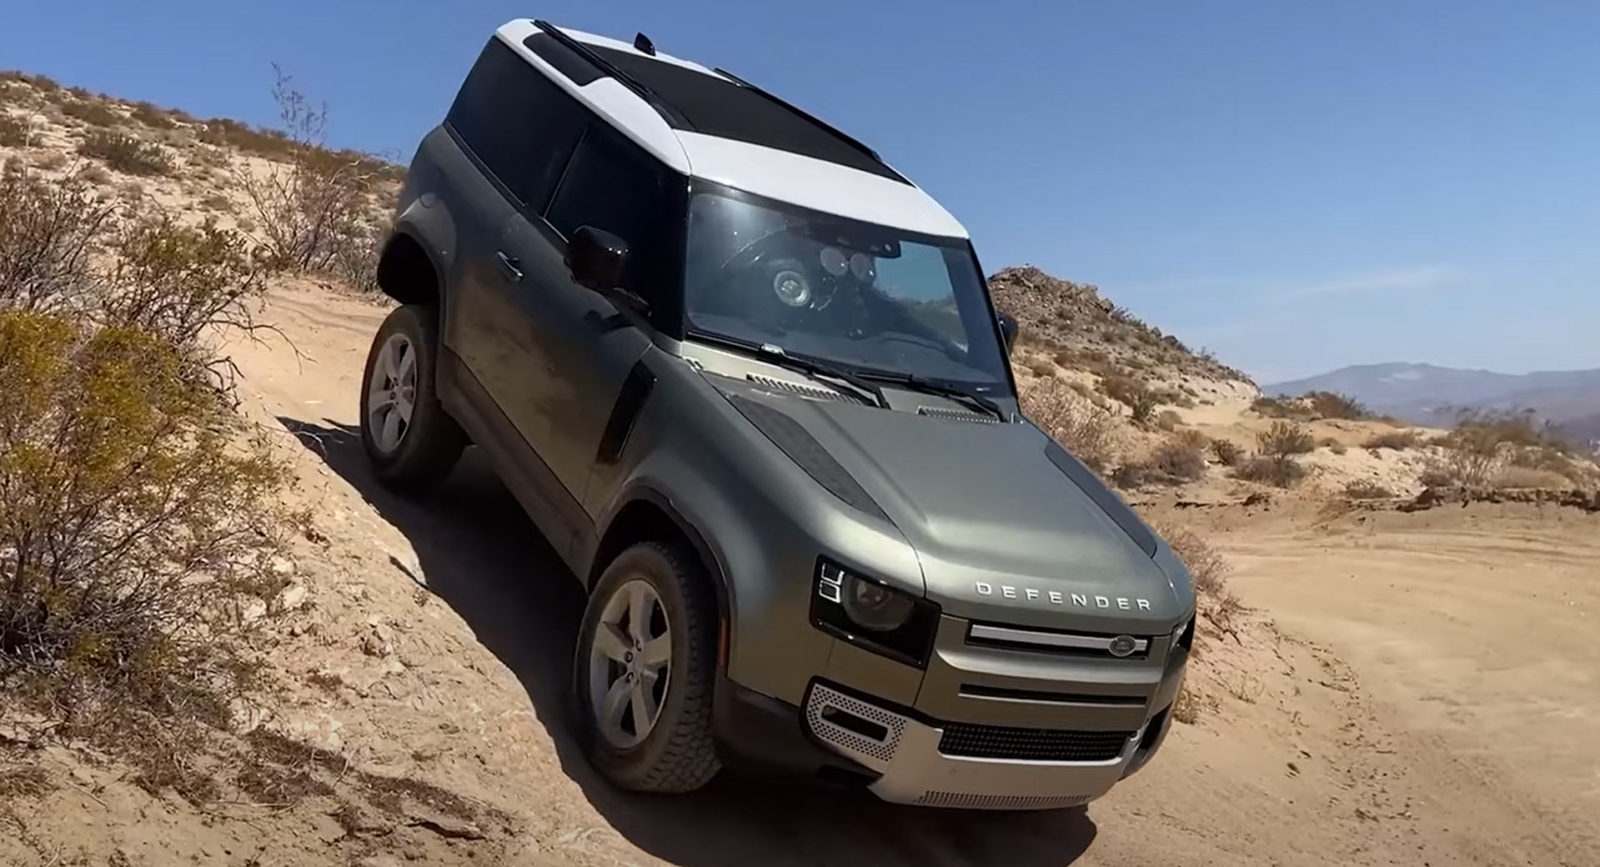 the-land-rover-defender-90-is-a-perfect-blend-of-refinement-and-off-road-capability